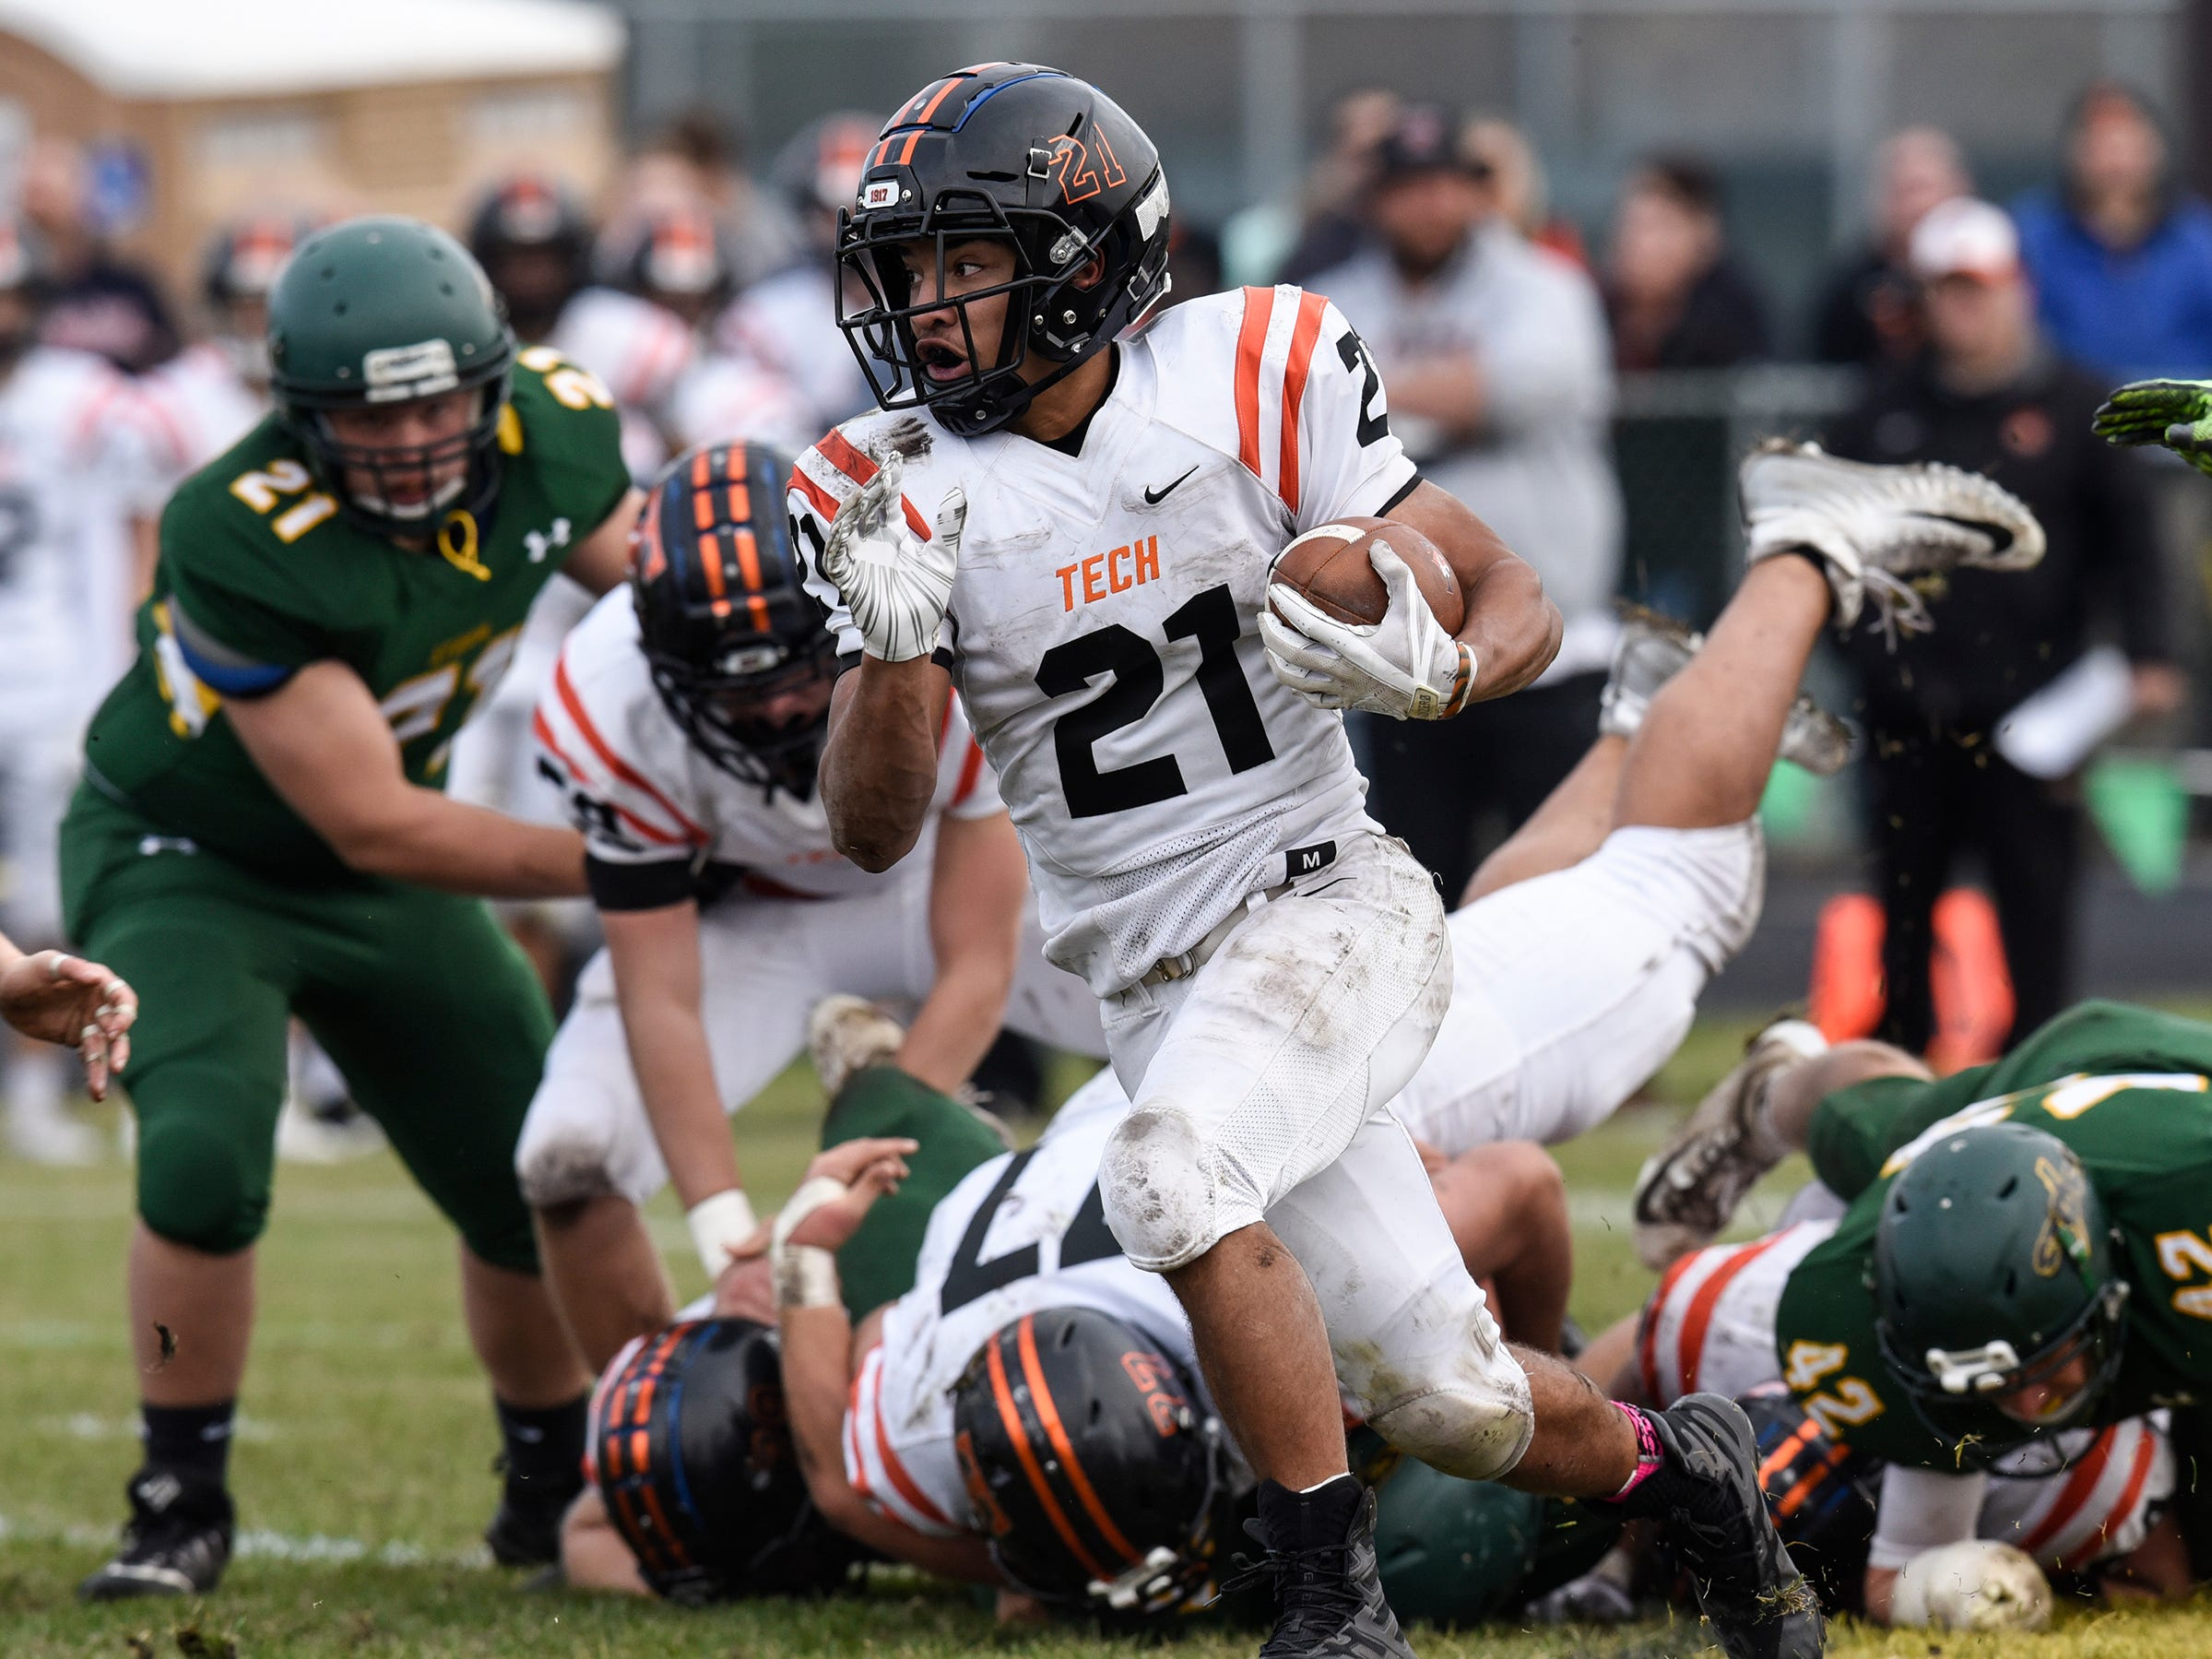 Kedrik Osuorah carries the ball for Tech Saturday, Oct. 27, during the Section 6-5A semifinal game in Sauk Rapids.